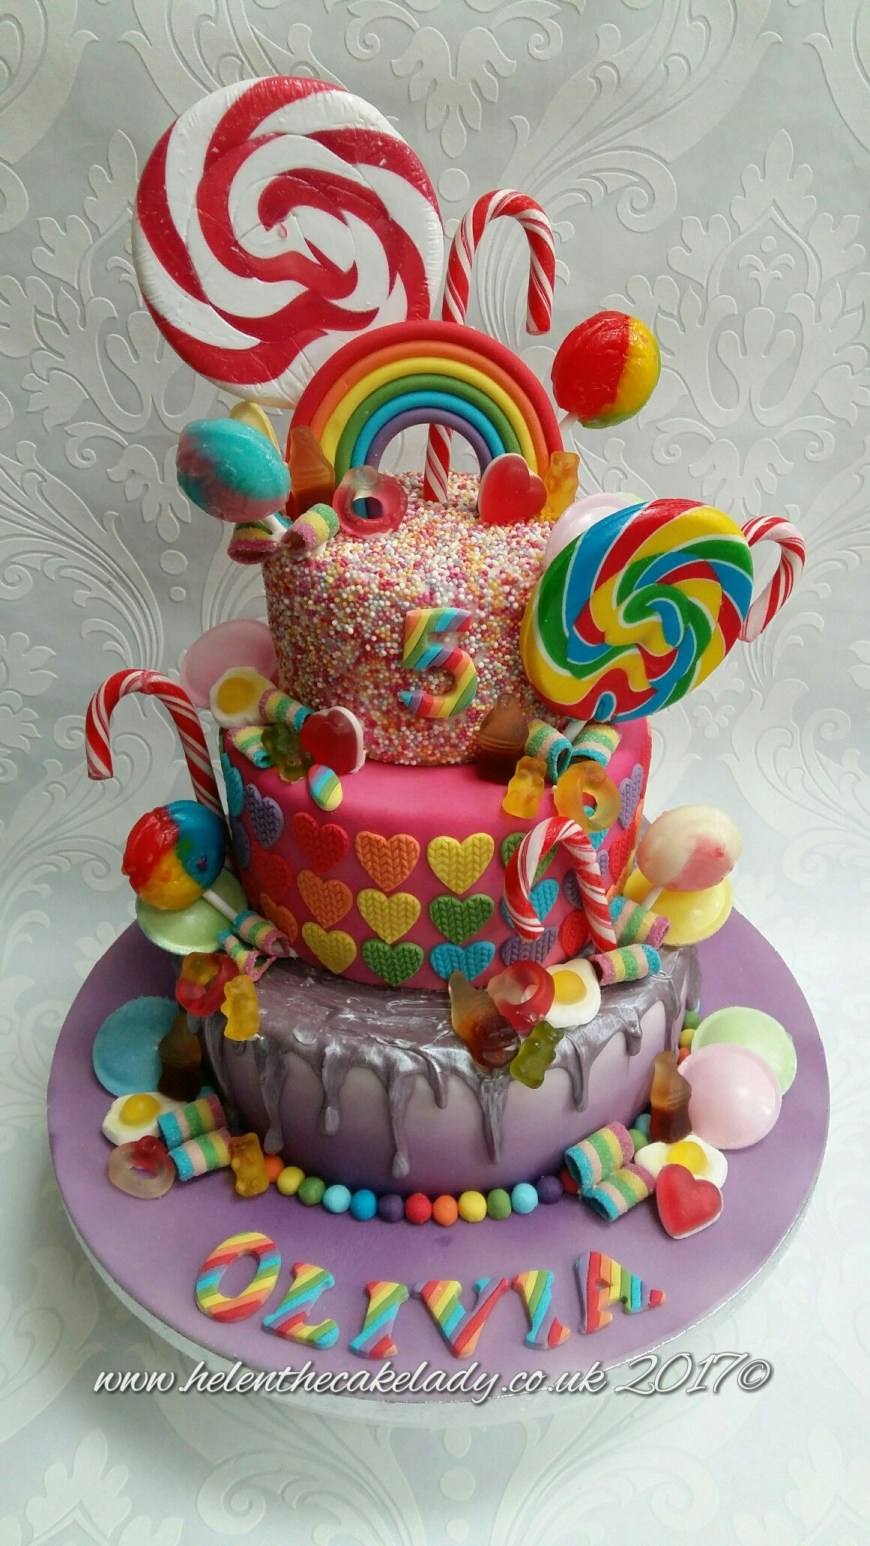 Candy Birthday Cake Sweets Candy Birthday Cake Birthday Cake Pinterest Birthday